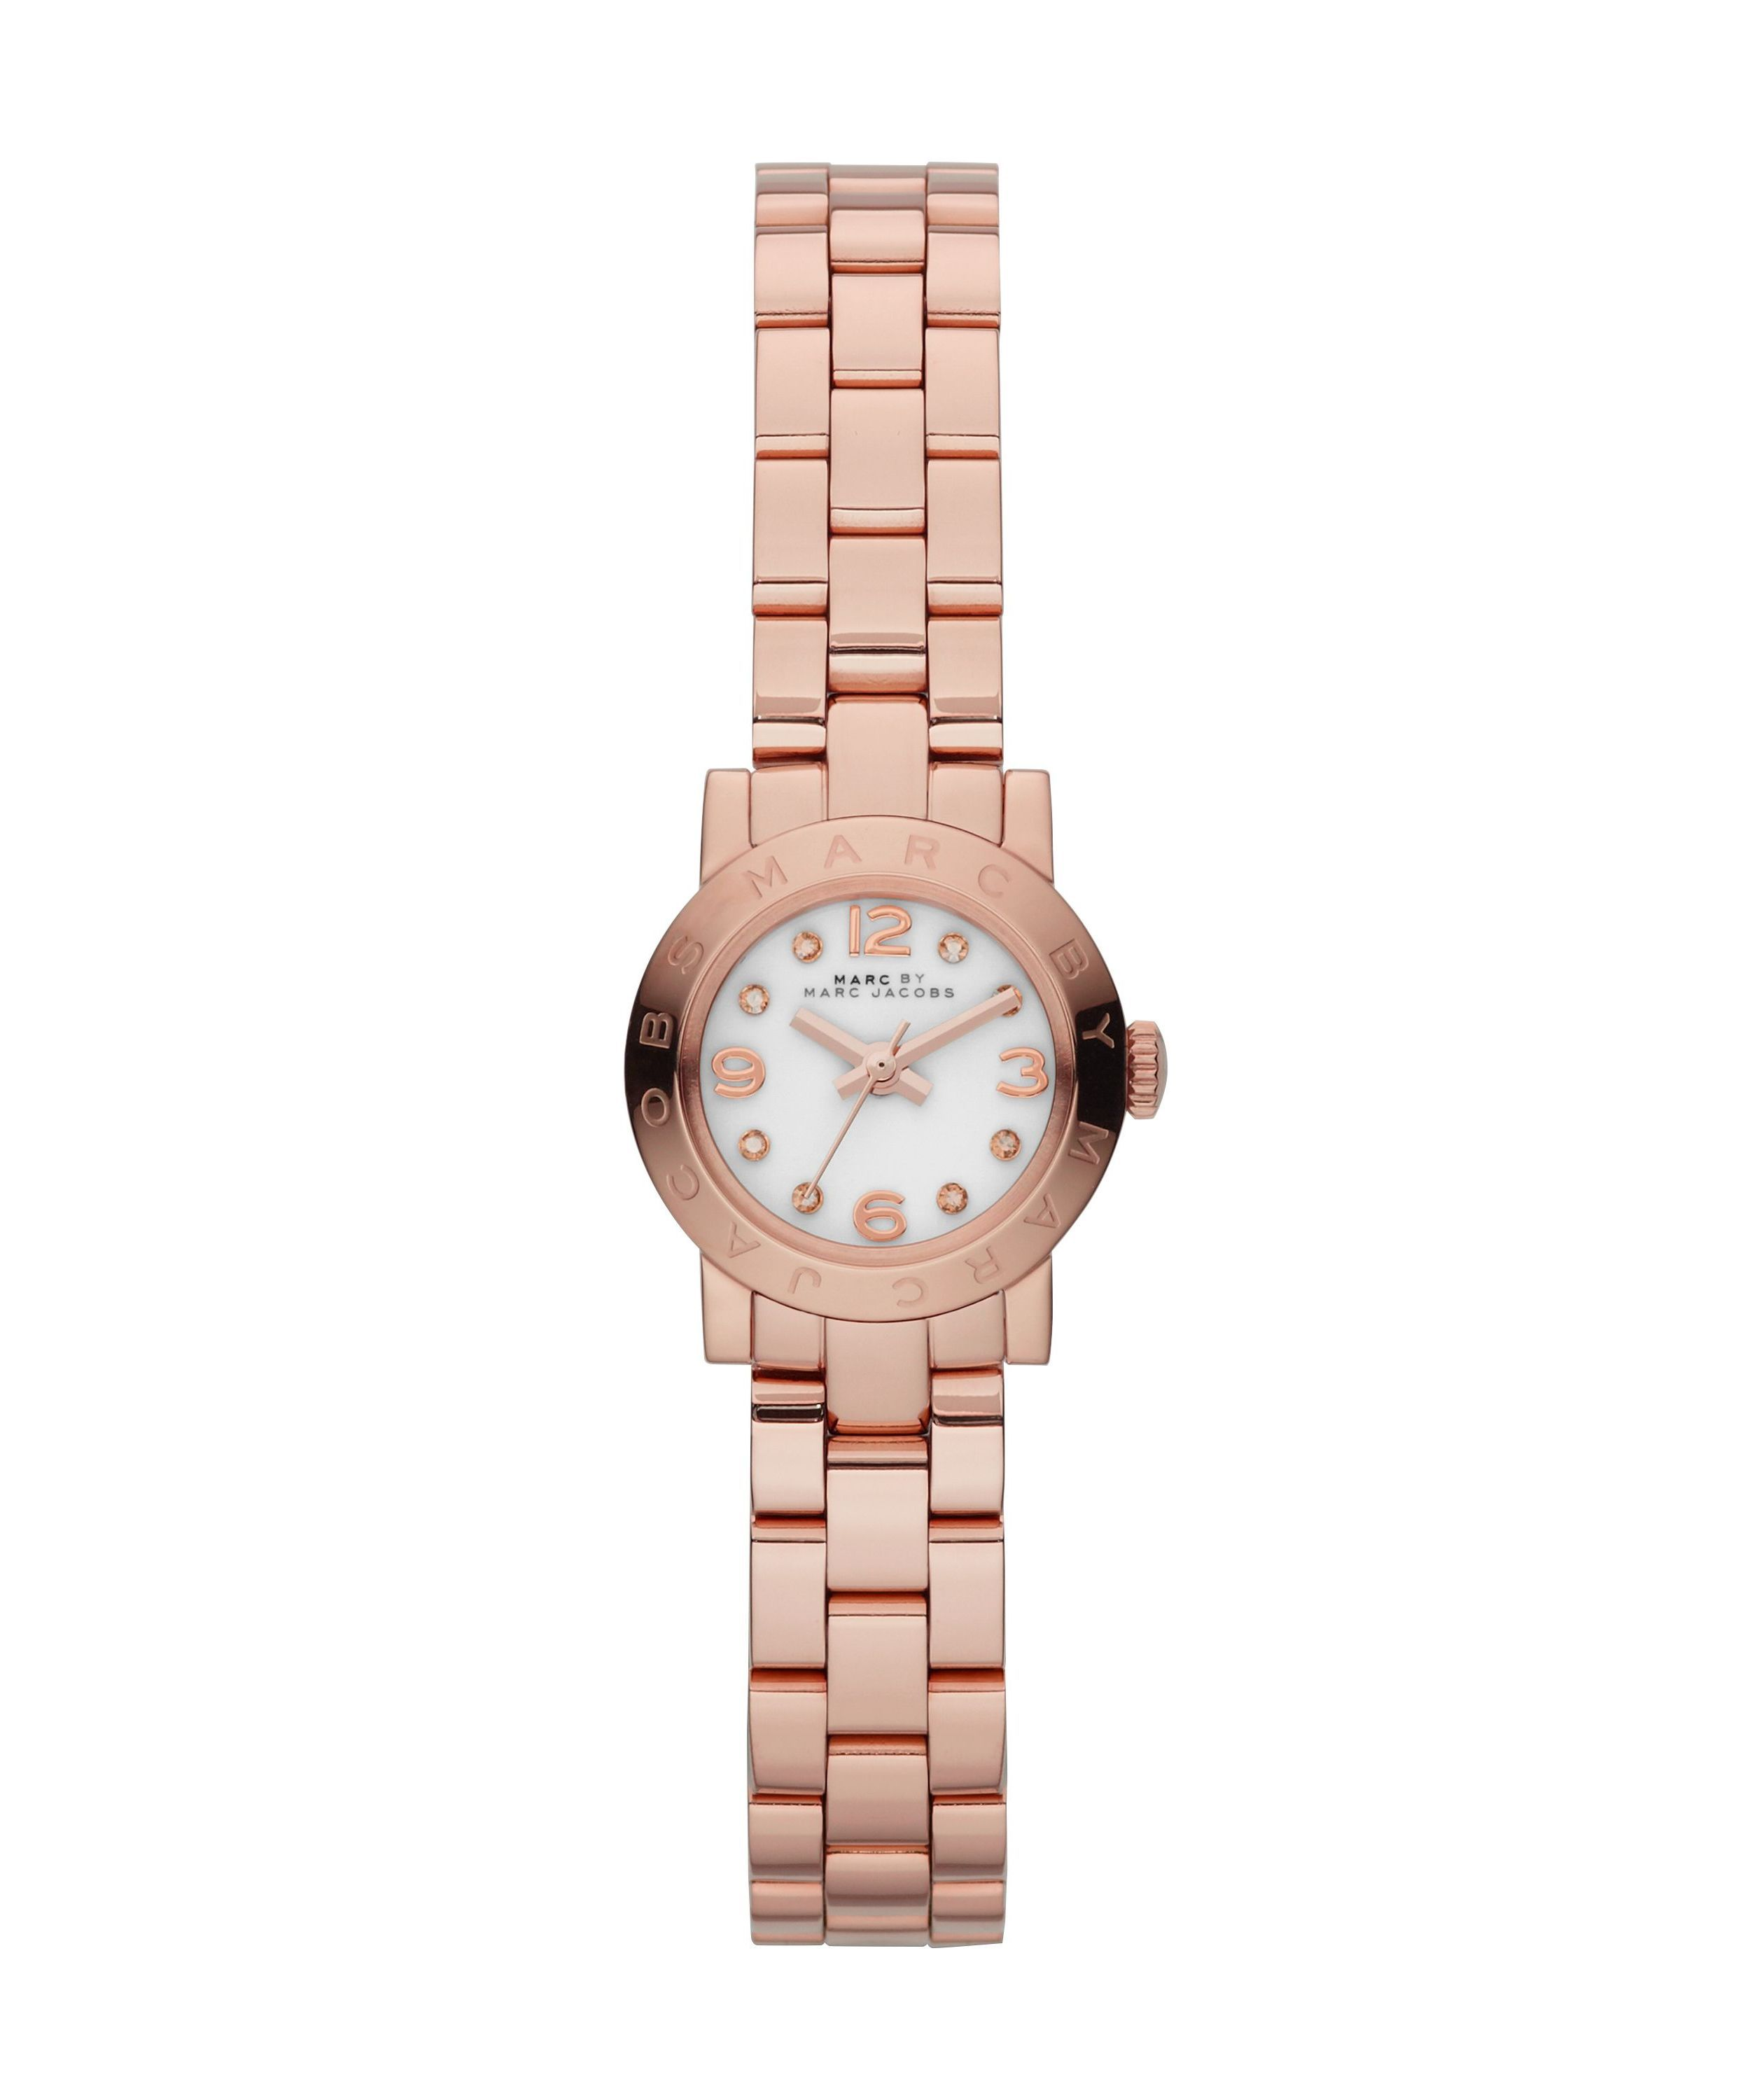 MBM3227 Amy dinky stainless steel ladies watch